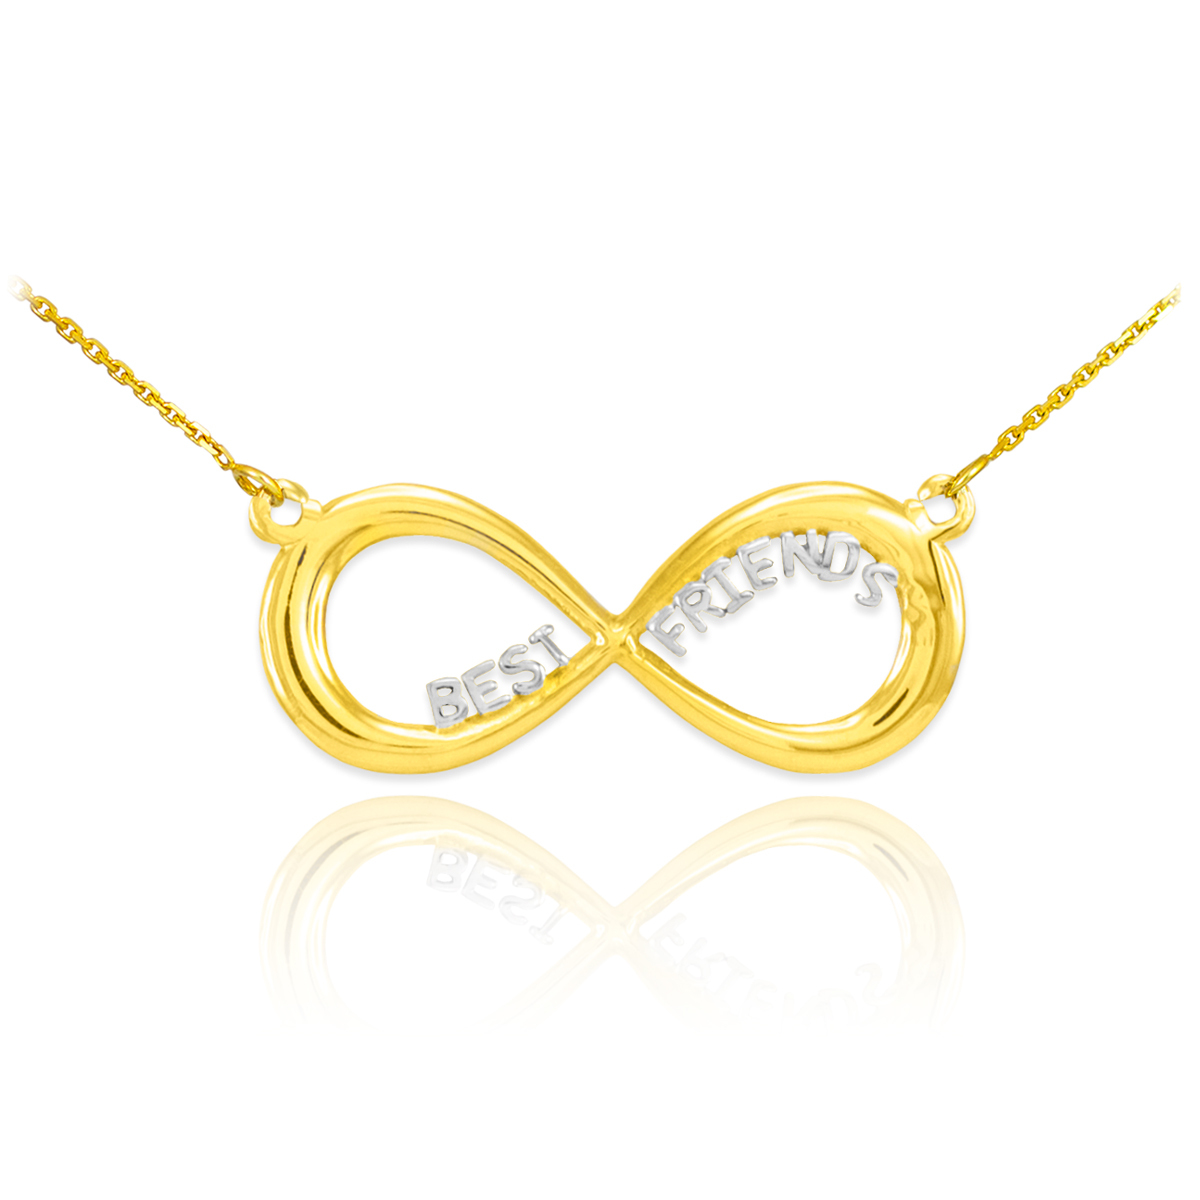 Infinity symbol meaning factory direct jewelry at factory direct jewelry you can find a wide selection of infinity symbol jewelry for instance is the 14k gold infinity heart pendant necklace with biocorpaavc